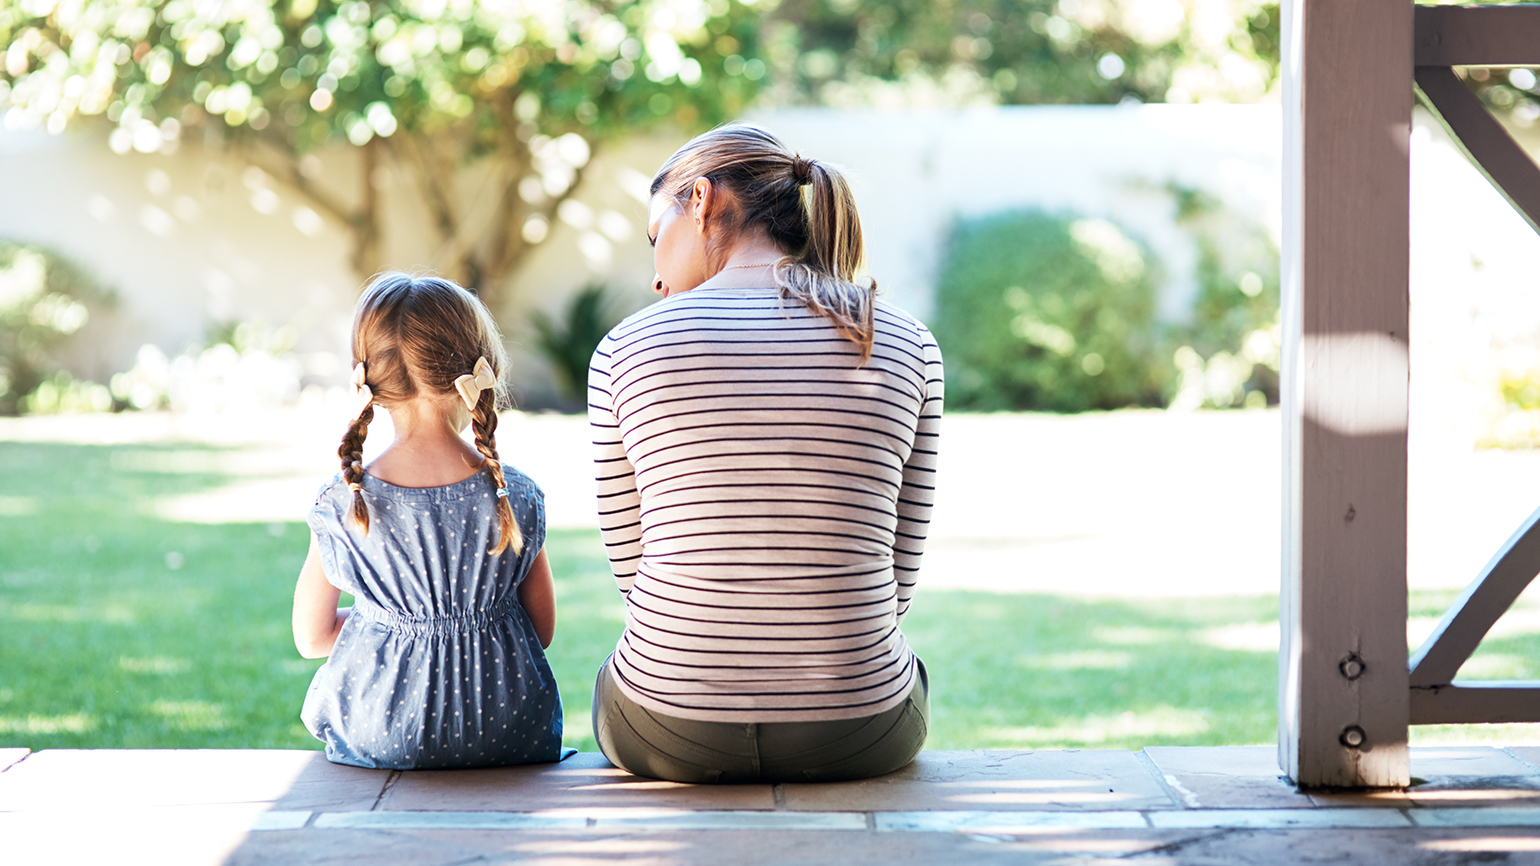 A mother talks with her young daughter while sitting on a porch